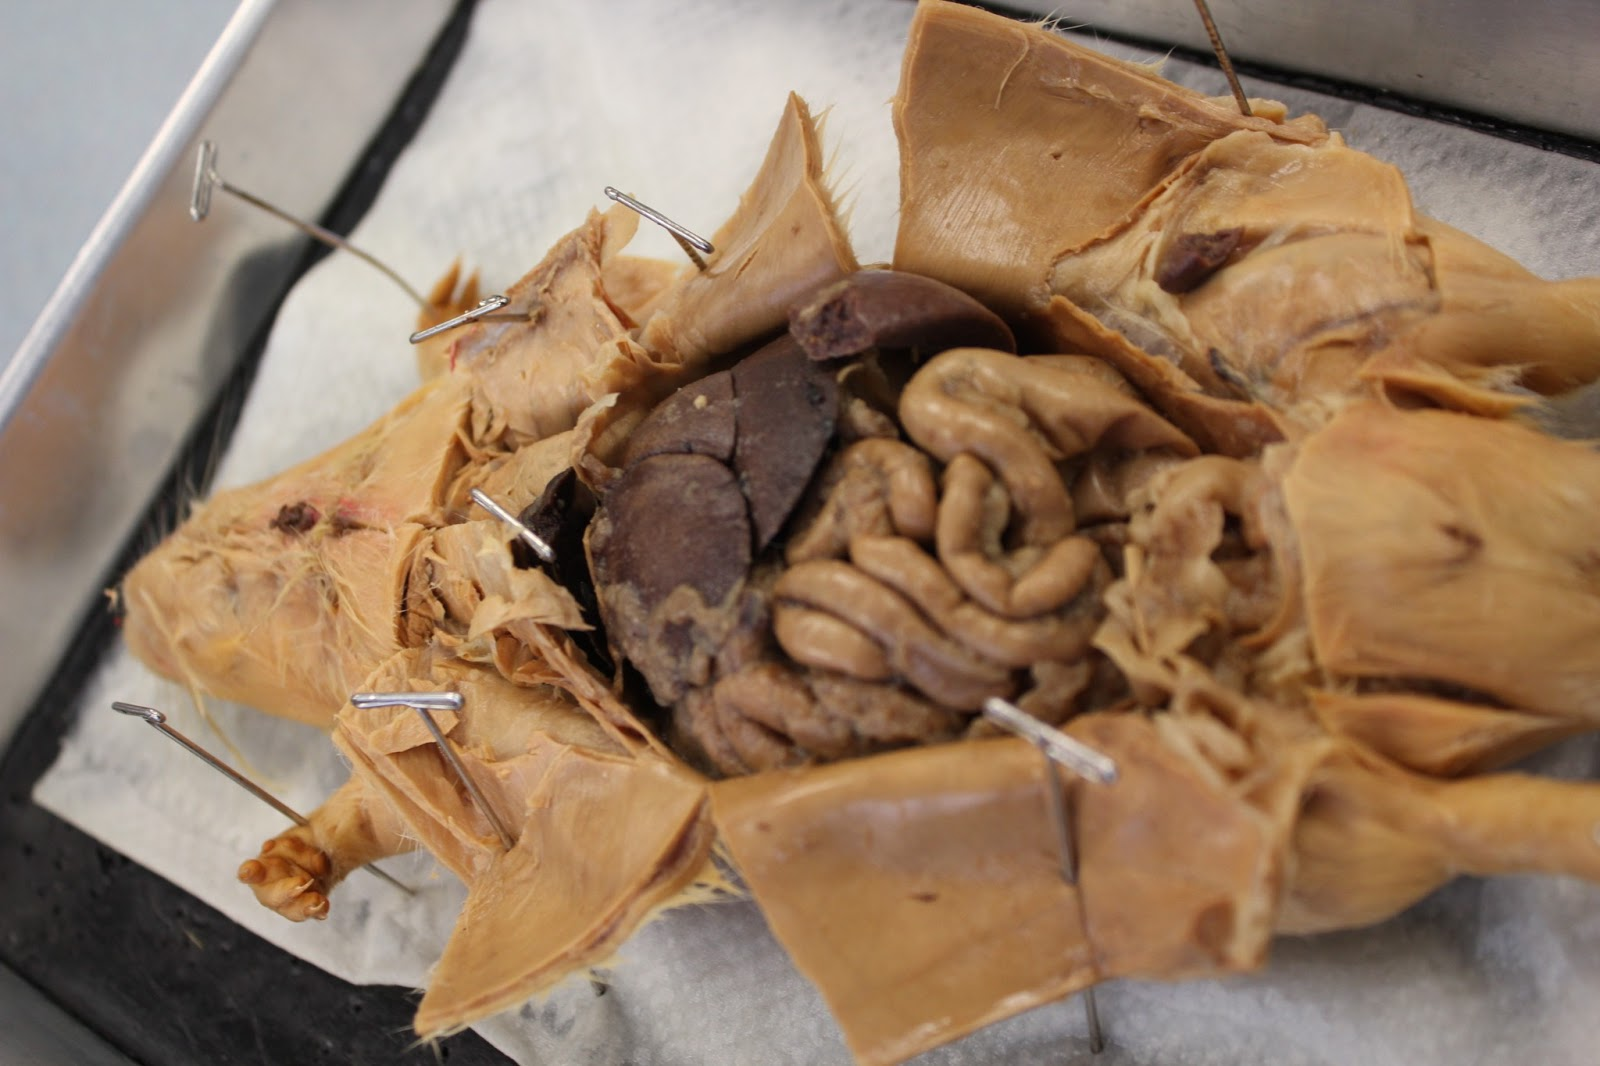 biology and stuff (bio 11 class): rat dissection, Cephalic Vein